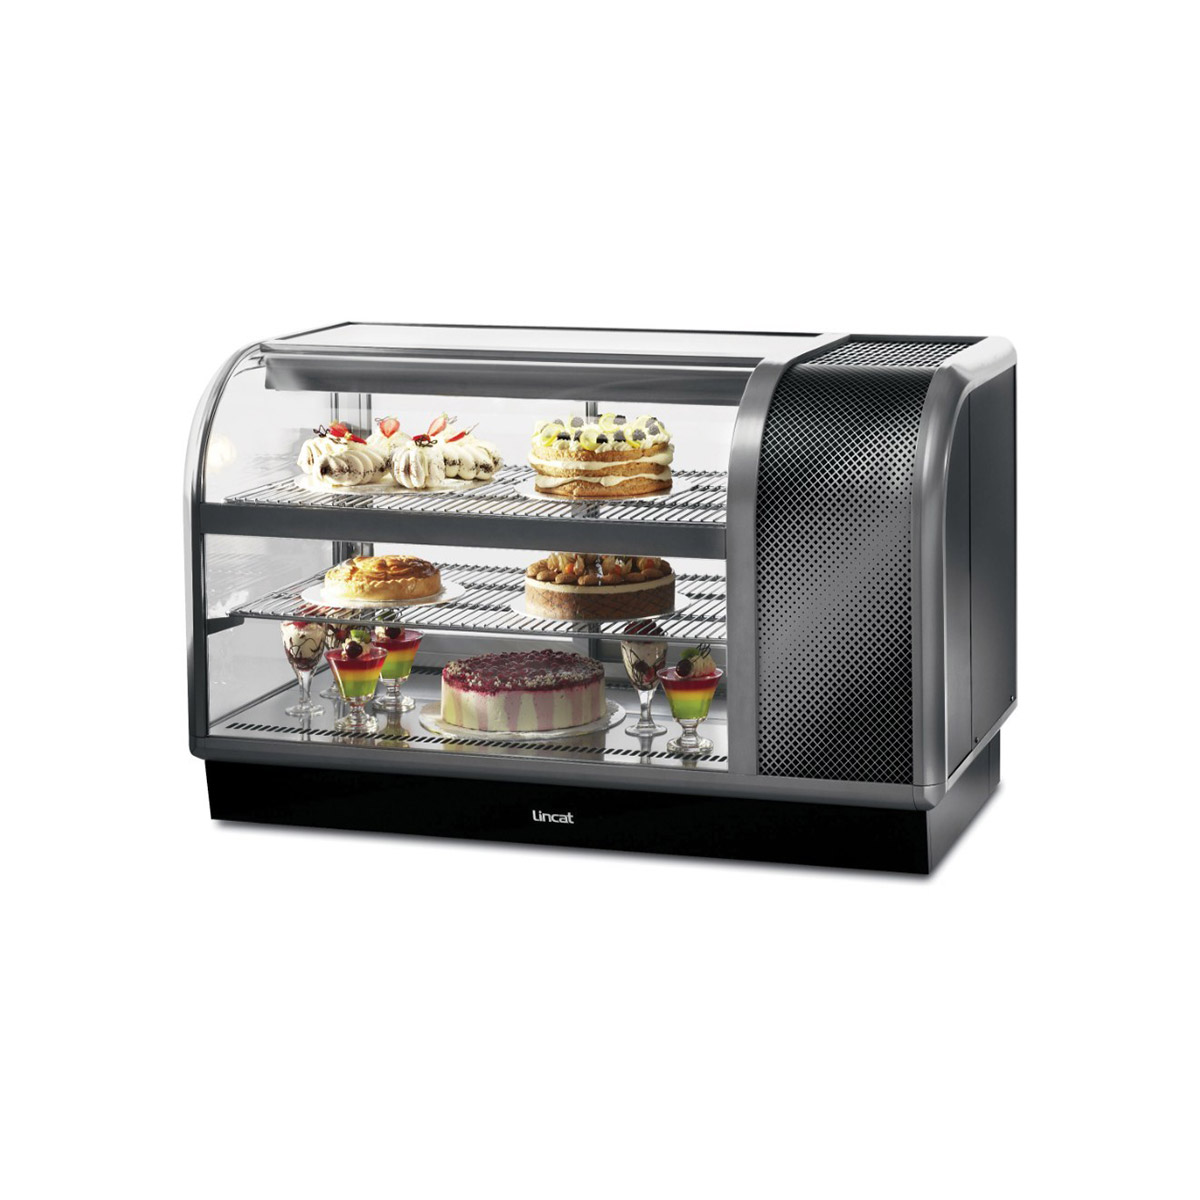 C6R/130BR - Lincat Seal 650 Series Counter-top Curved Front Refrigerated Merchandiser - Back-Service - Side-Mounted Power Pack [Right] - W 1300 mm - 0.7 kW